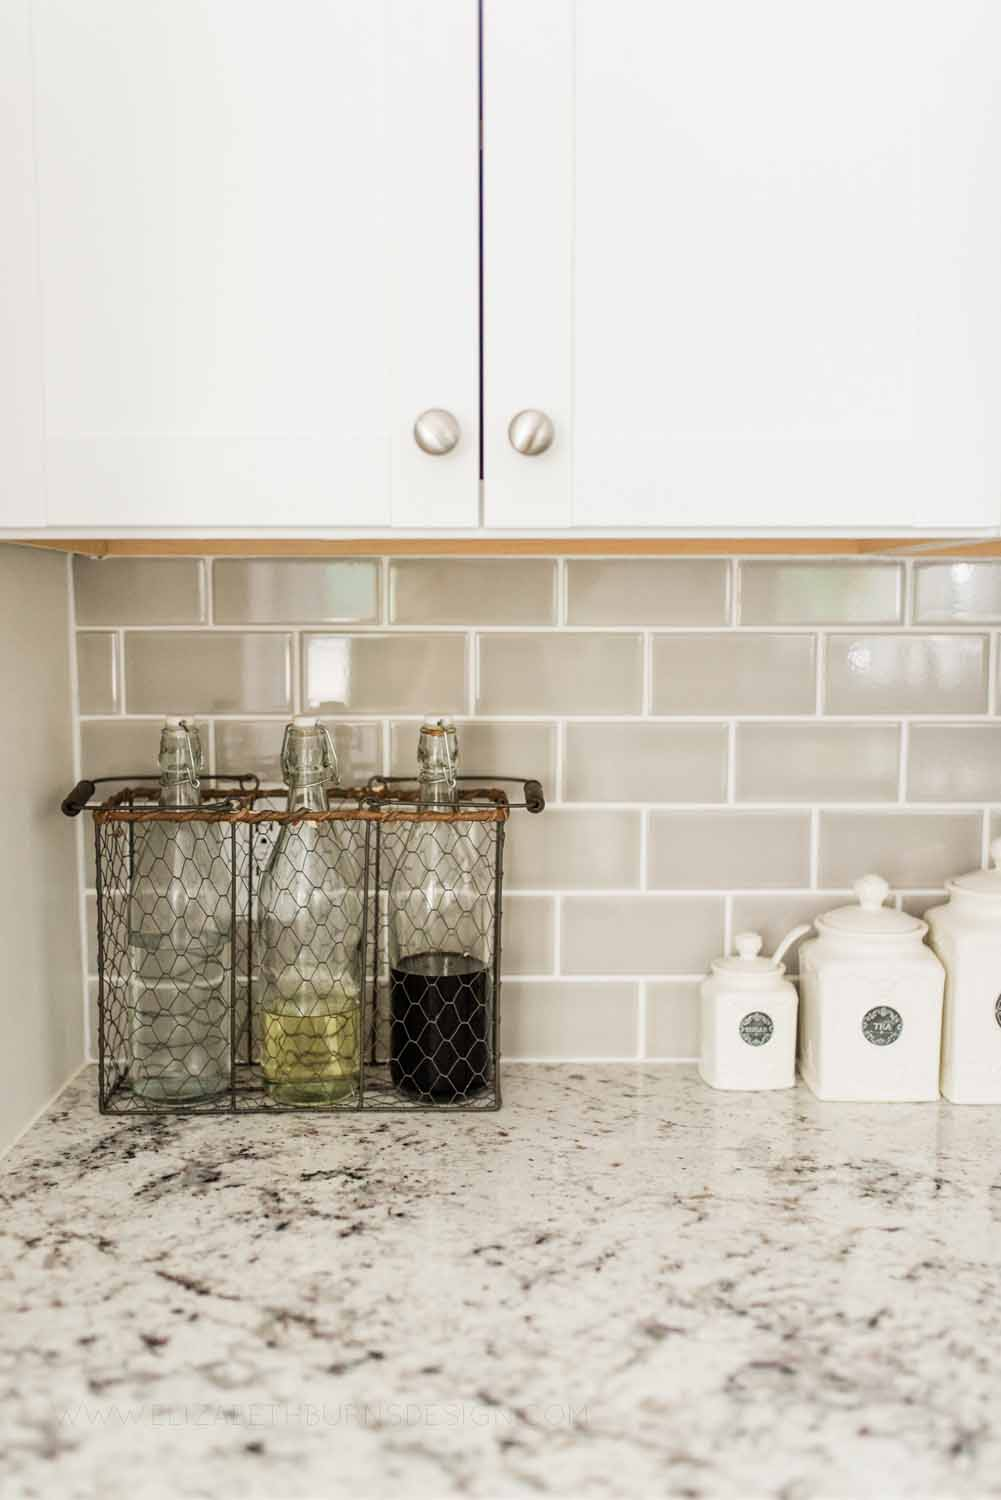 Elizabeth Burns Design Raleigh Interior Designer 1990s house remodel before and after Benjamin Moore Classic Gray 1548 Arcadia White Shaker Cabinets Gray Subway Tile Backsplash (10).jpg